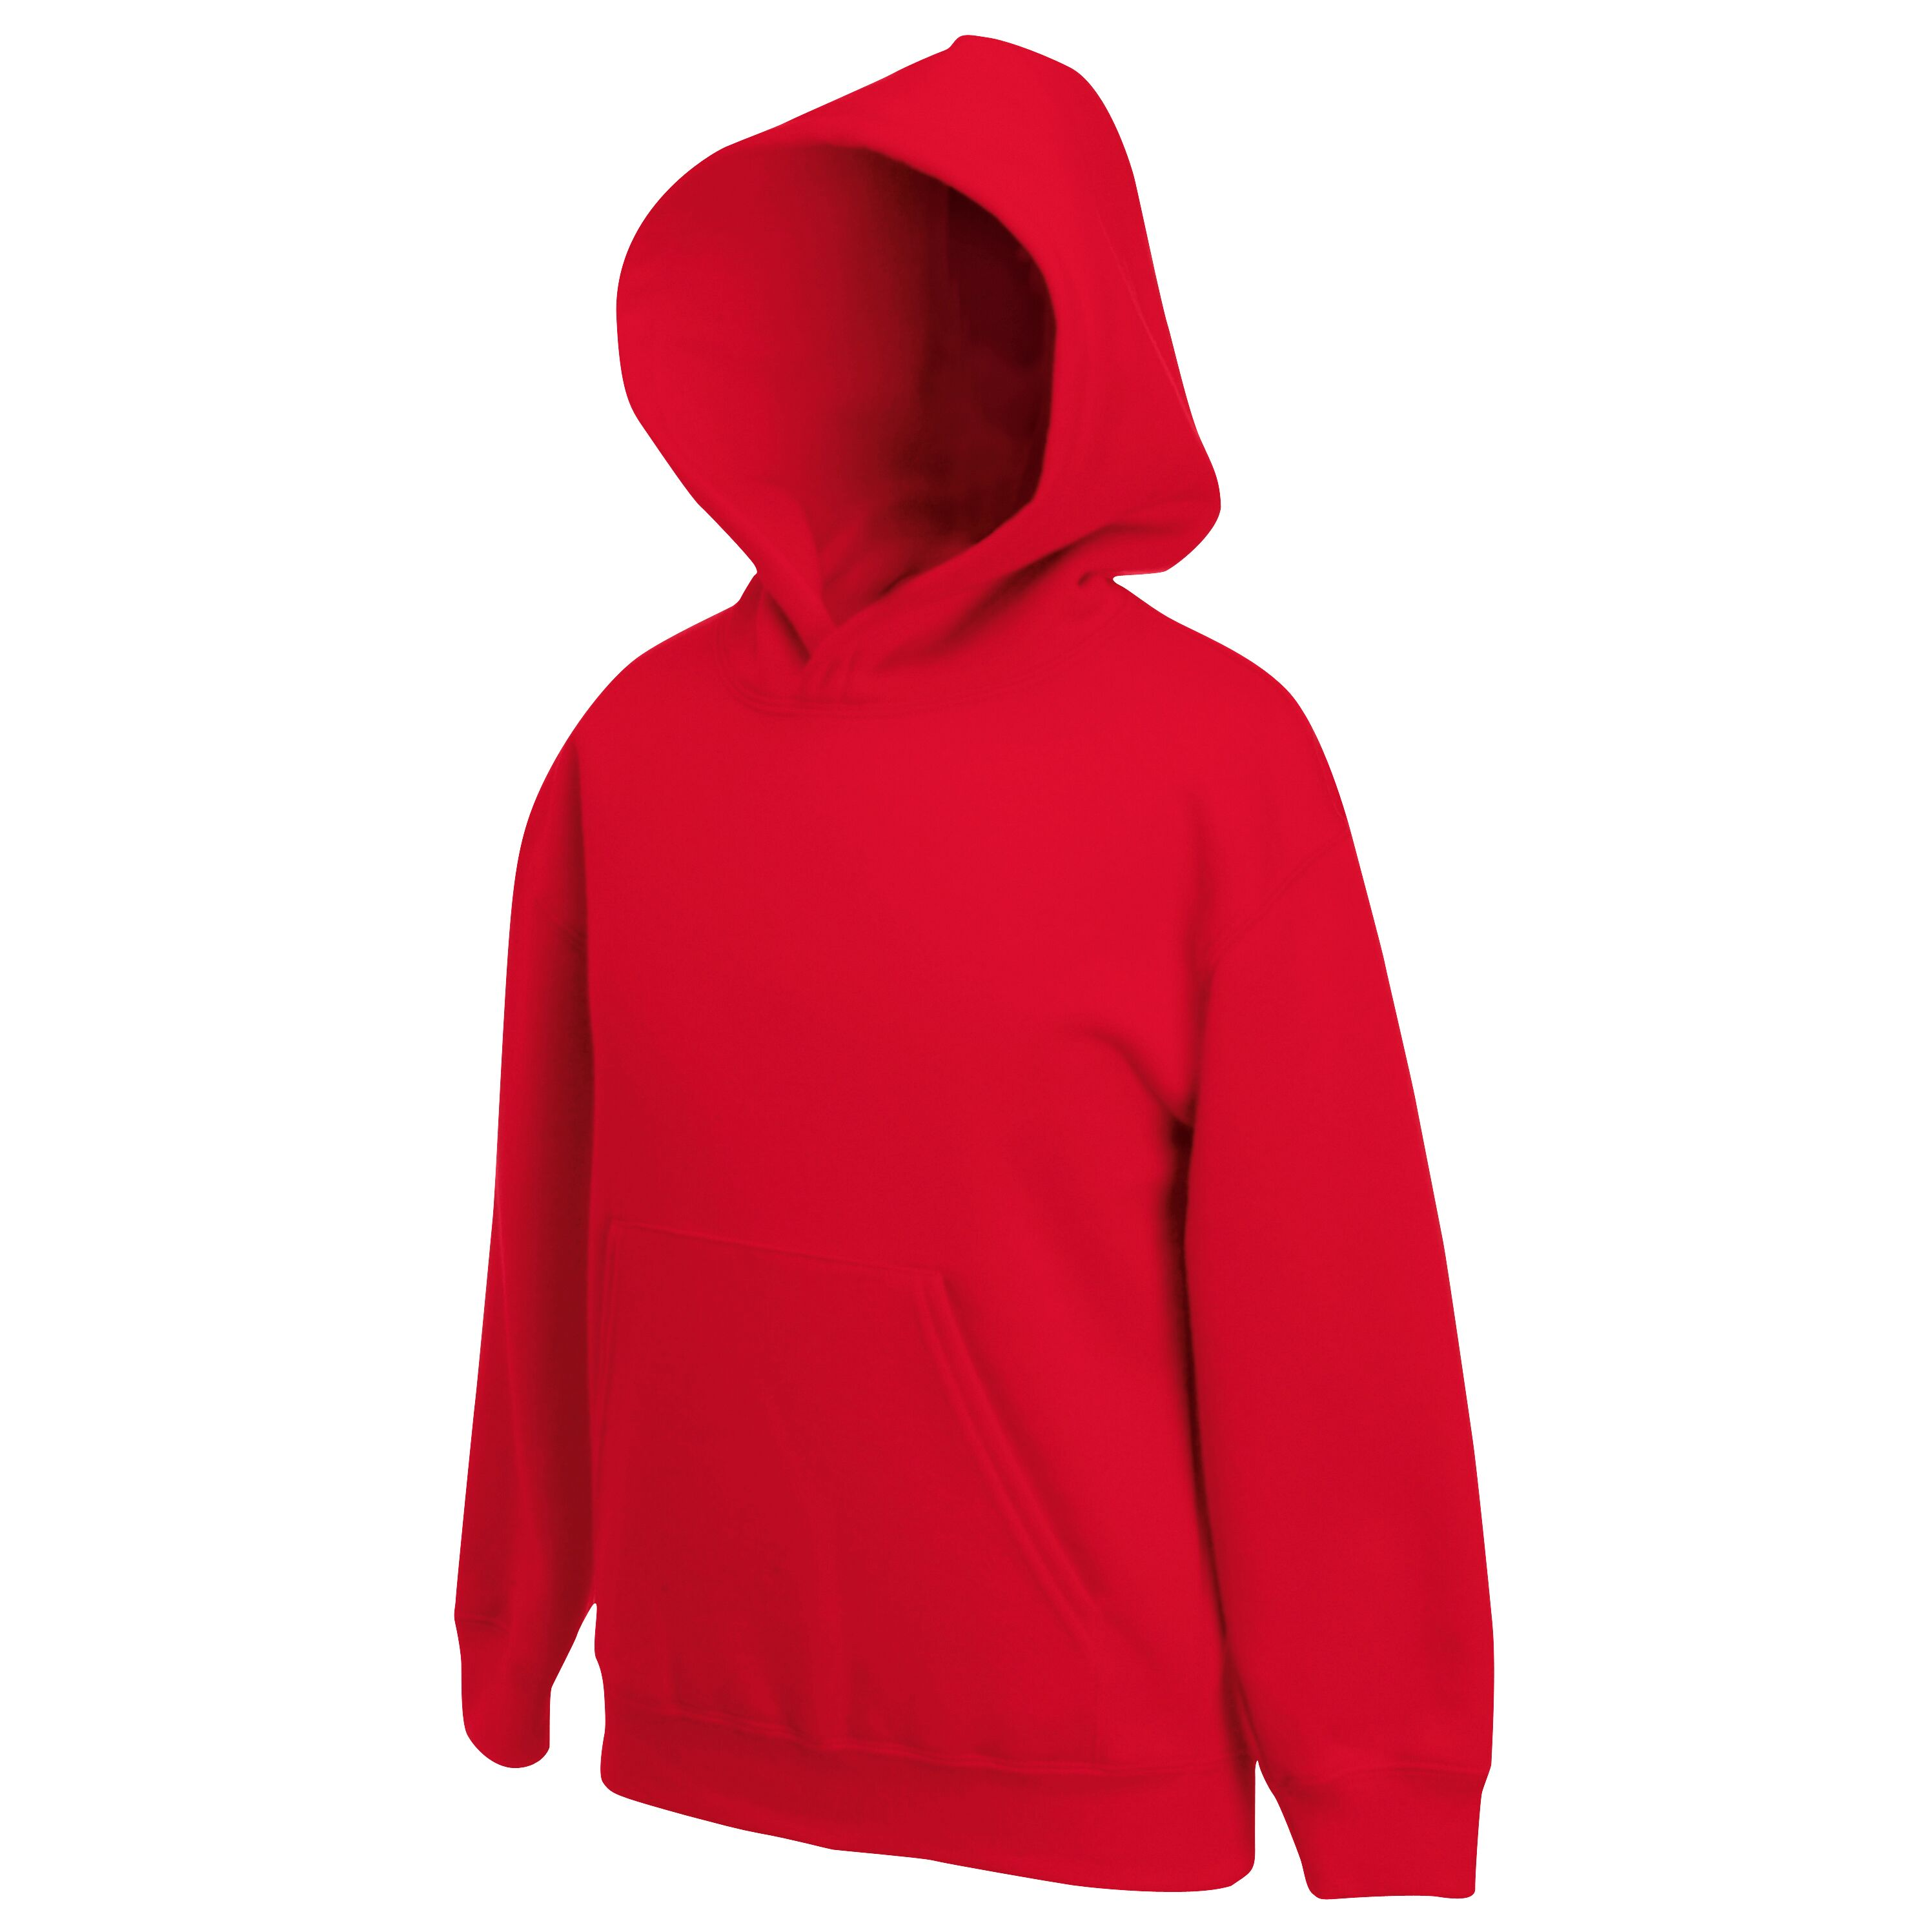 Find your adidas Kids - Red - Hoodies at hereaupy06.gq All styles and colors available in the official adidas online store.